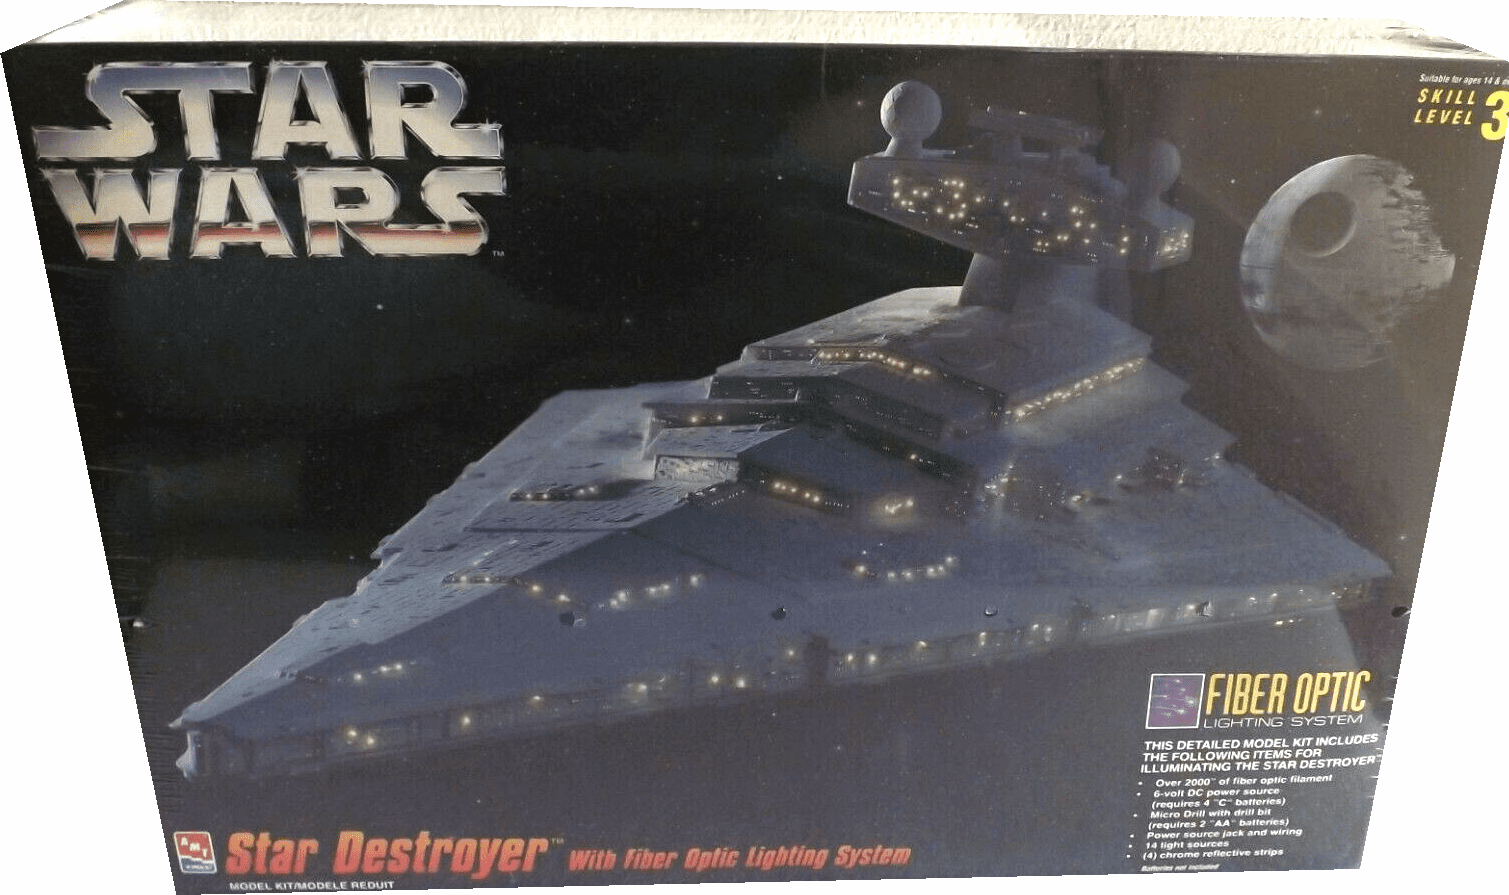 AMT/ERTL Star Wars Star Destroyer Fiber Optics Lighting System Display Model Kit